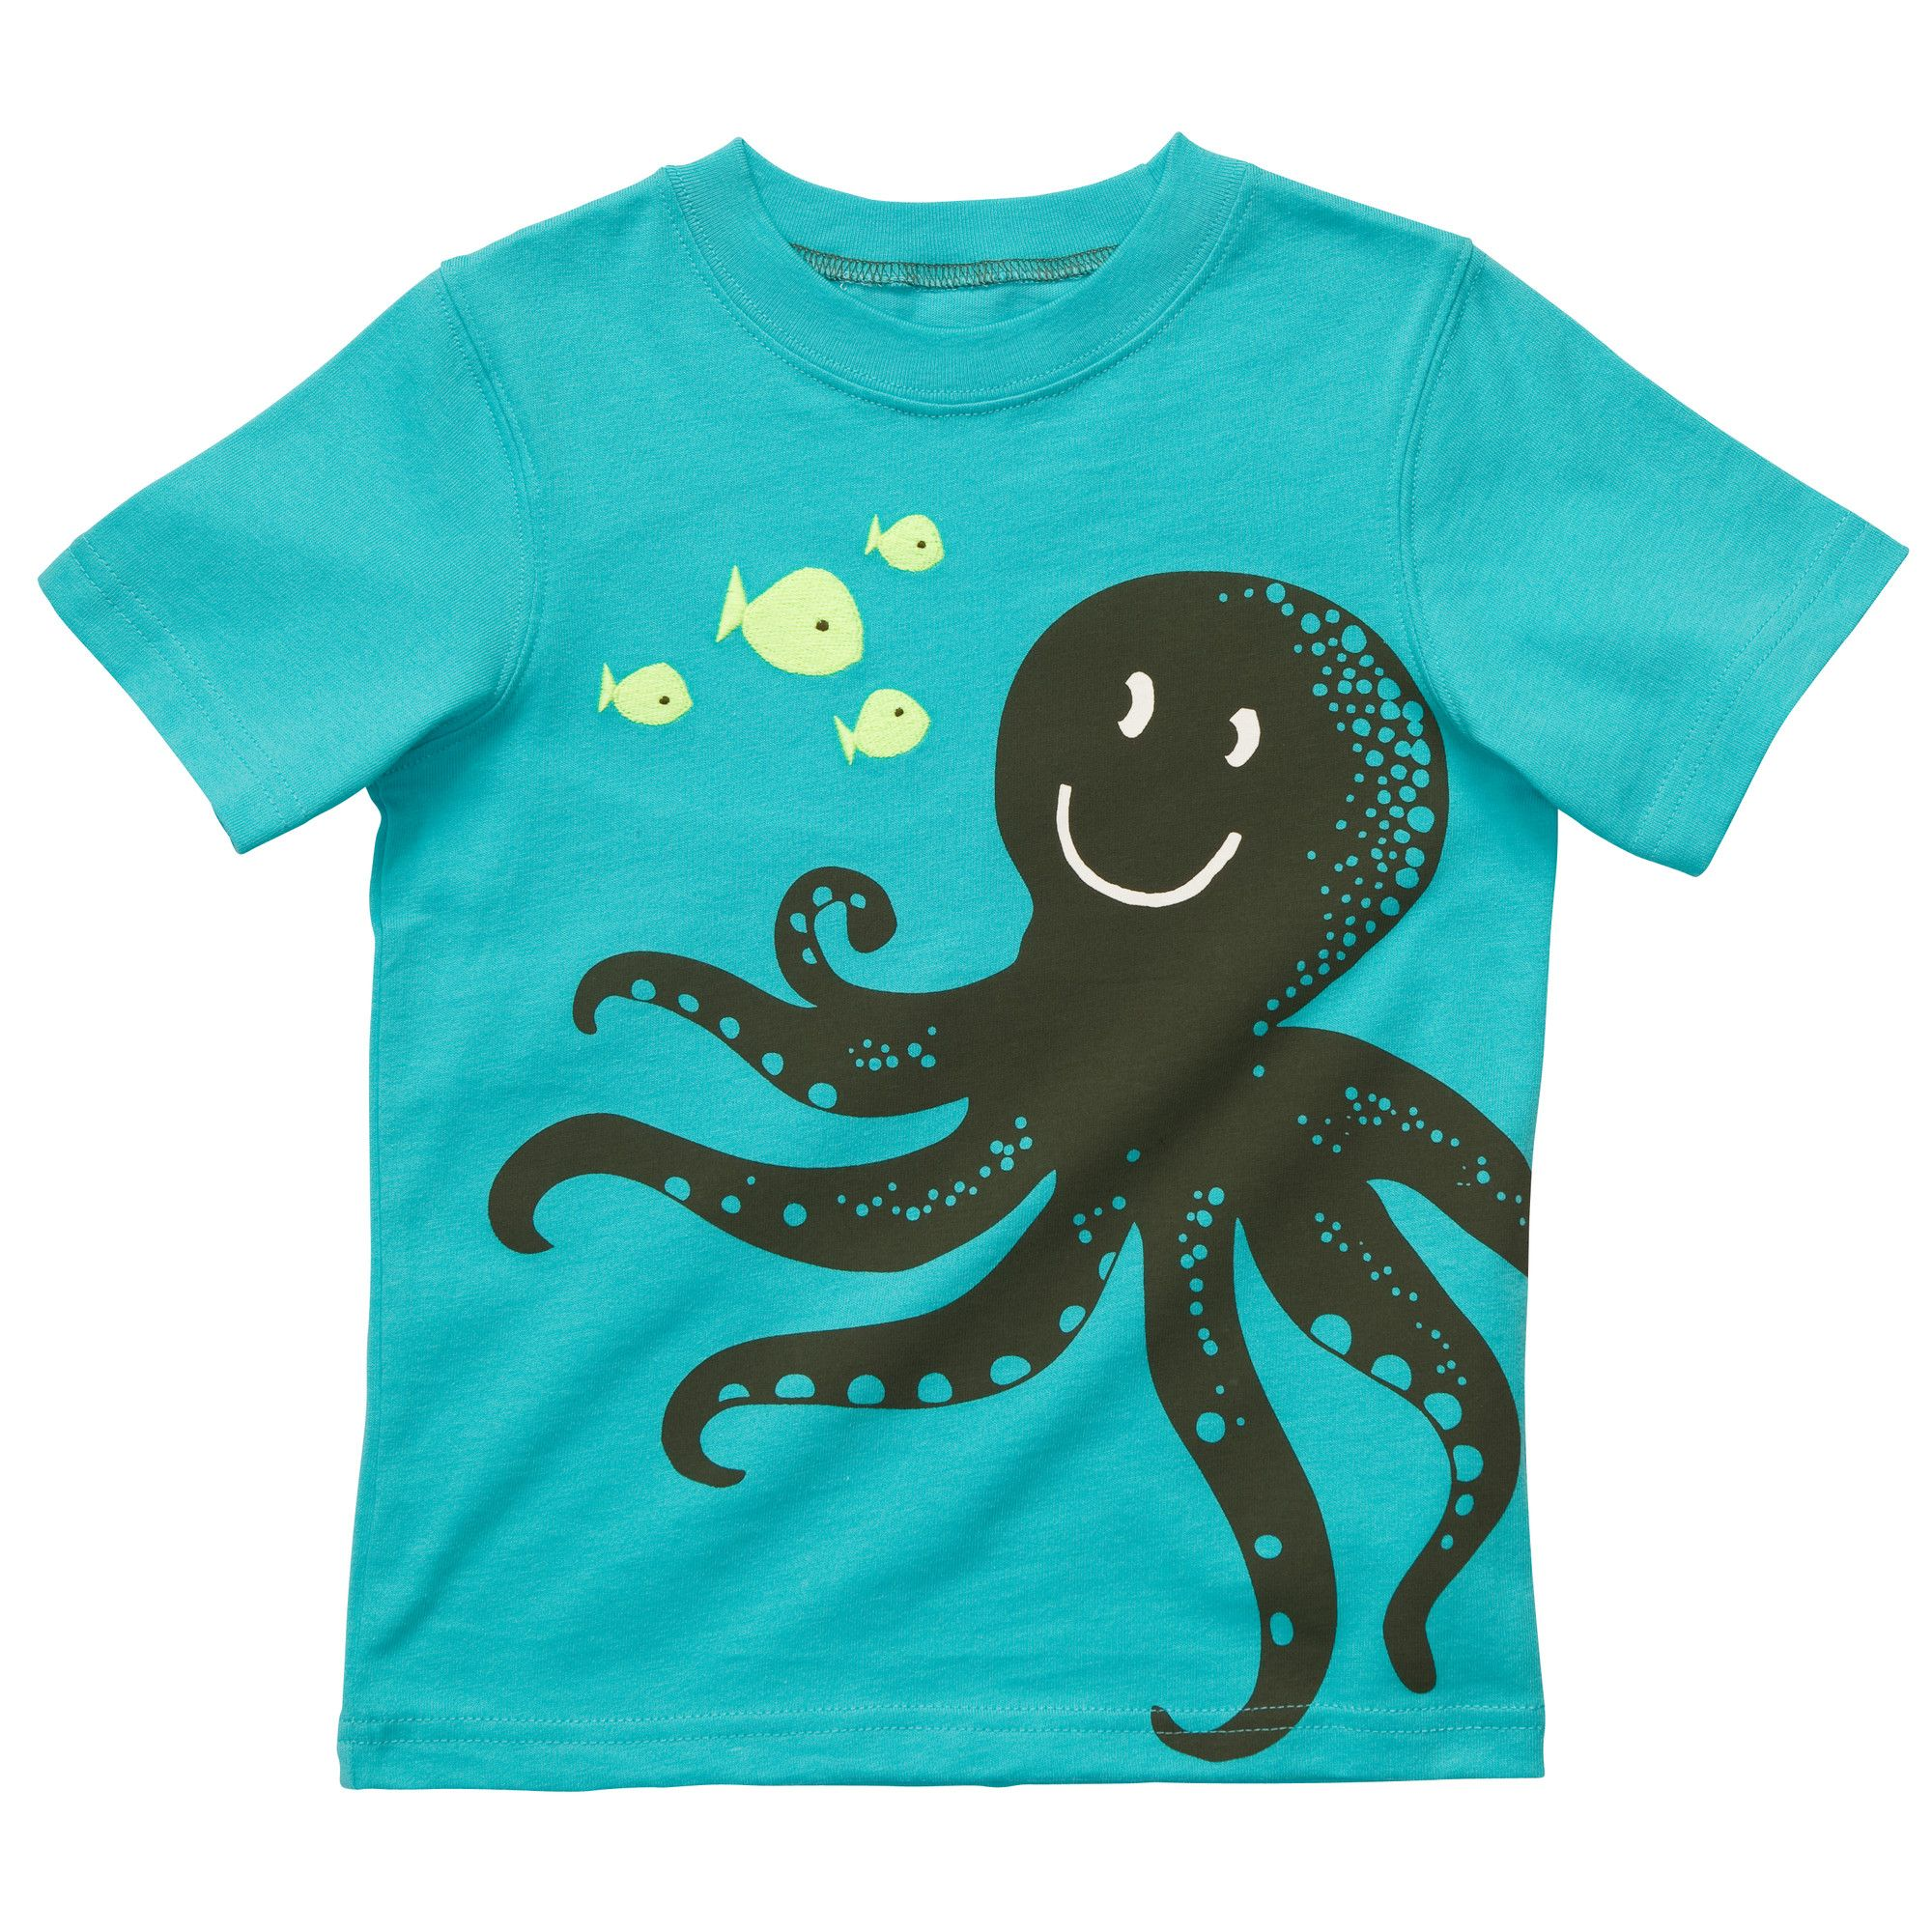 Toddler Short-Sleeve Fashion of Animal Images Graphic Tees